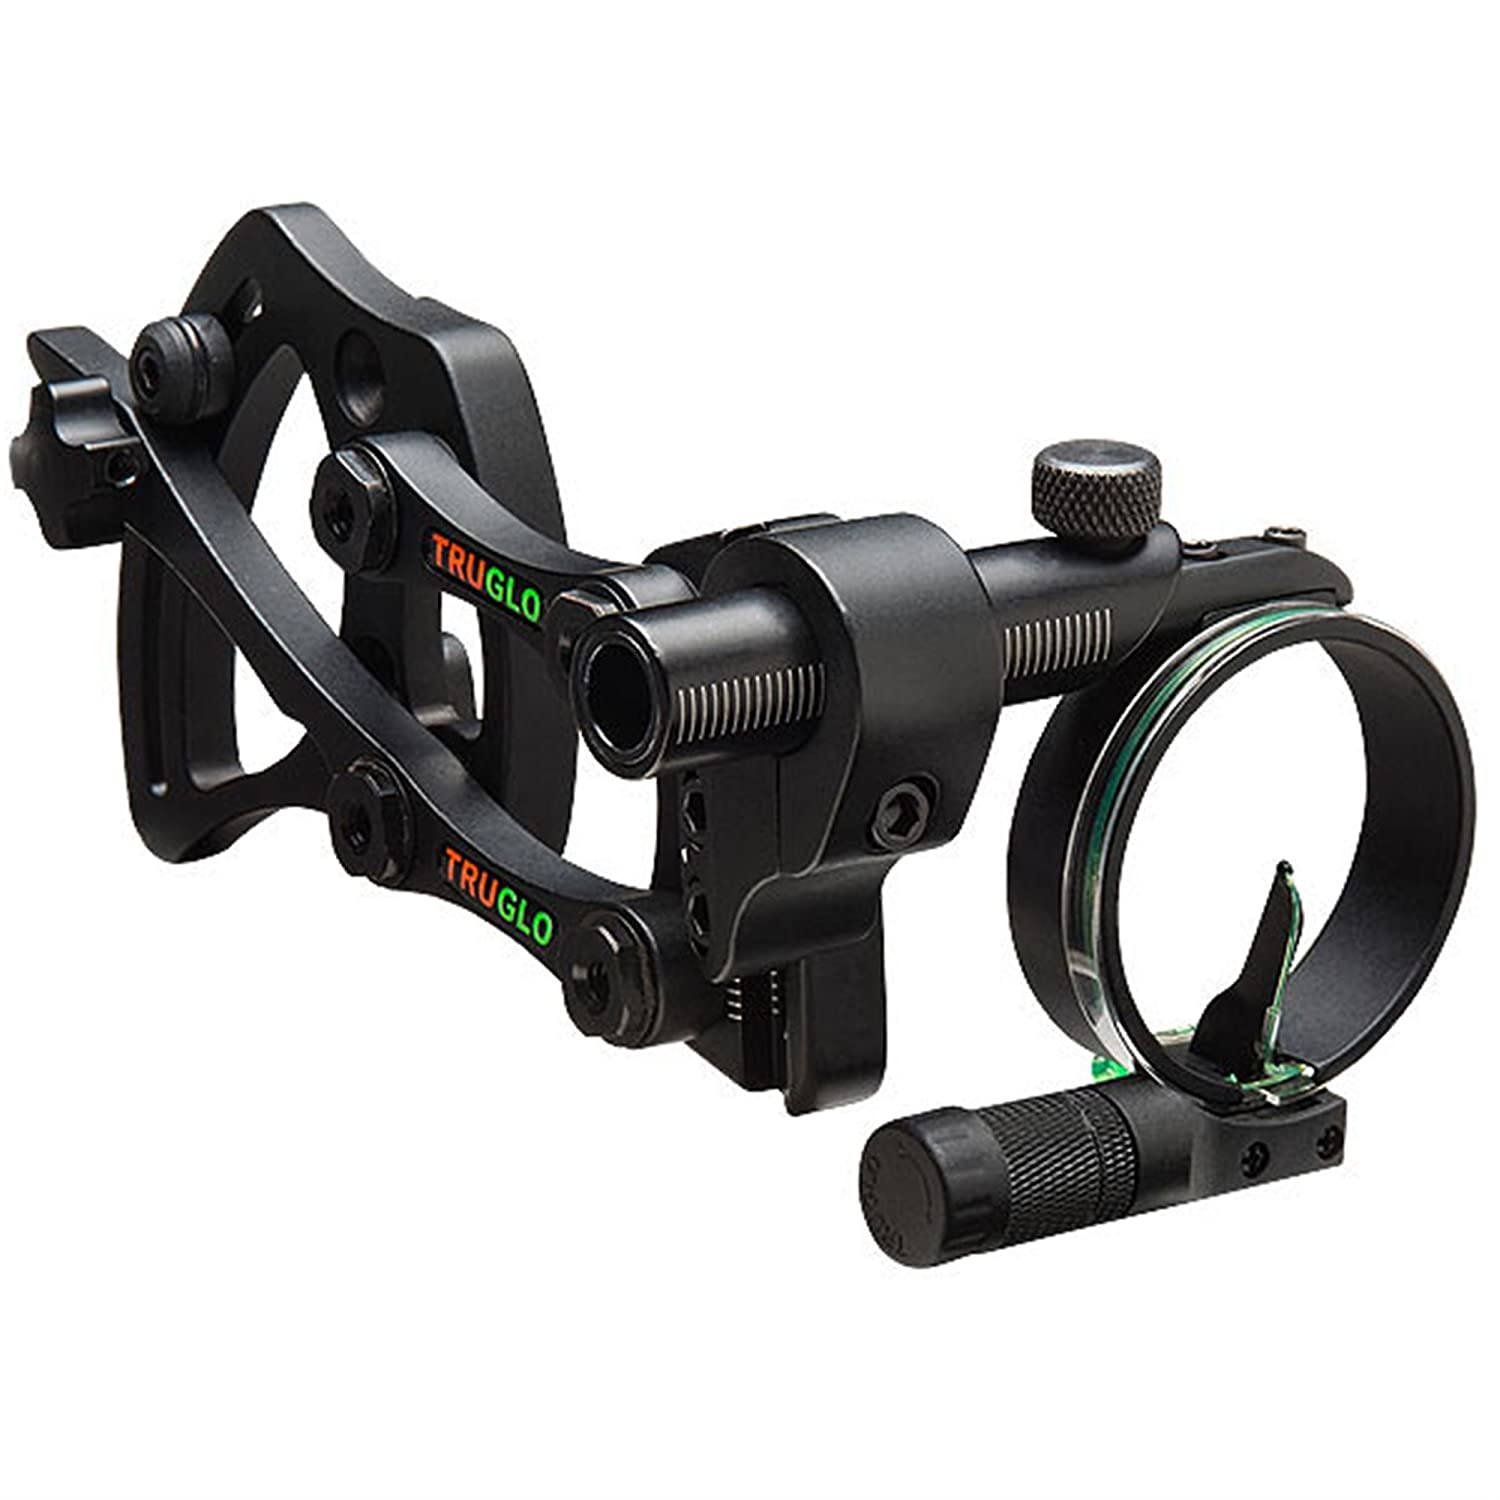 Truglo Pendulum Adjustable Bracket 1-Pin Sight